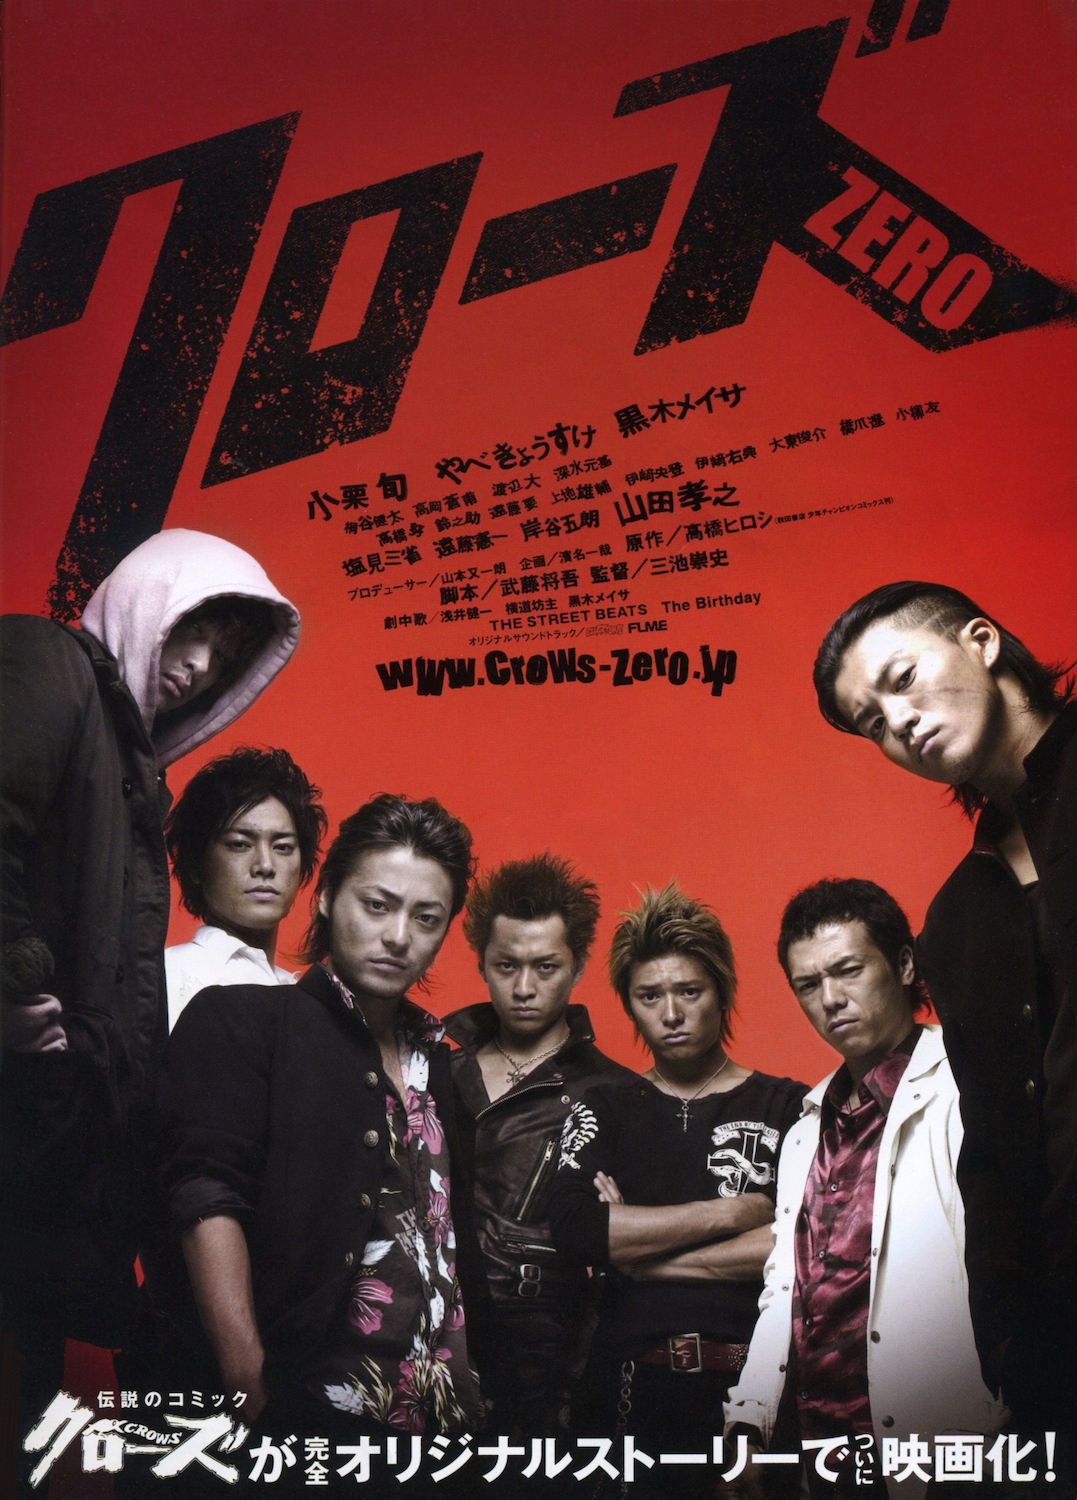 takashi miike movie posters critique crows zero